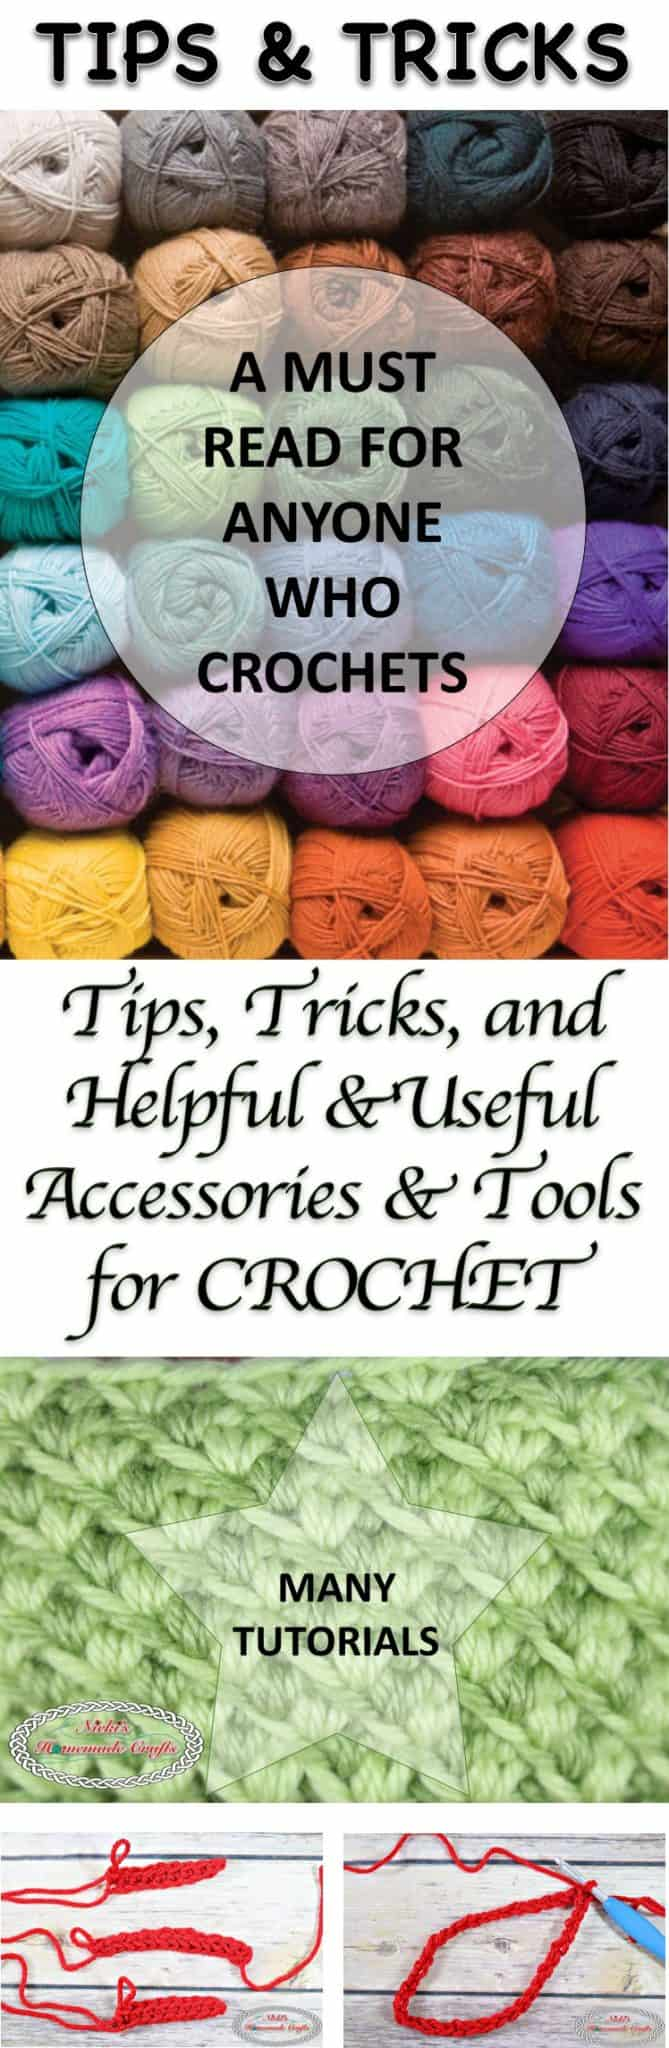 tips tricks and helpful and useful accessories and tools